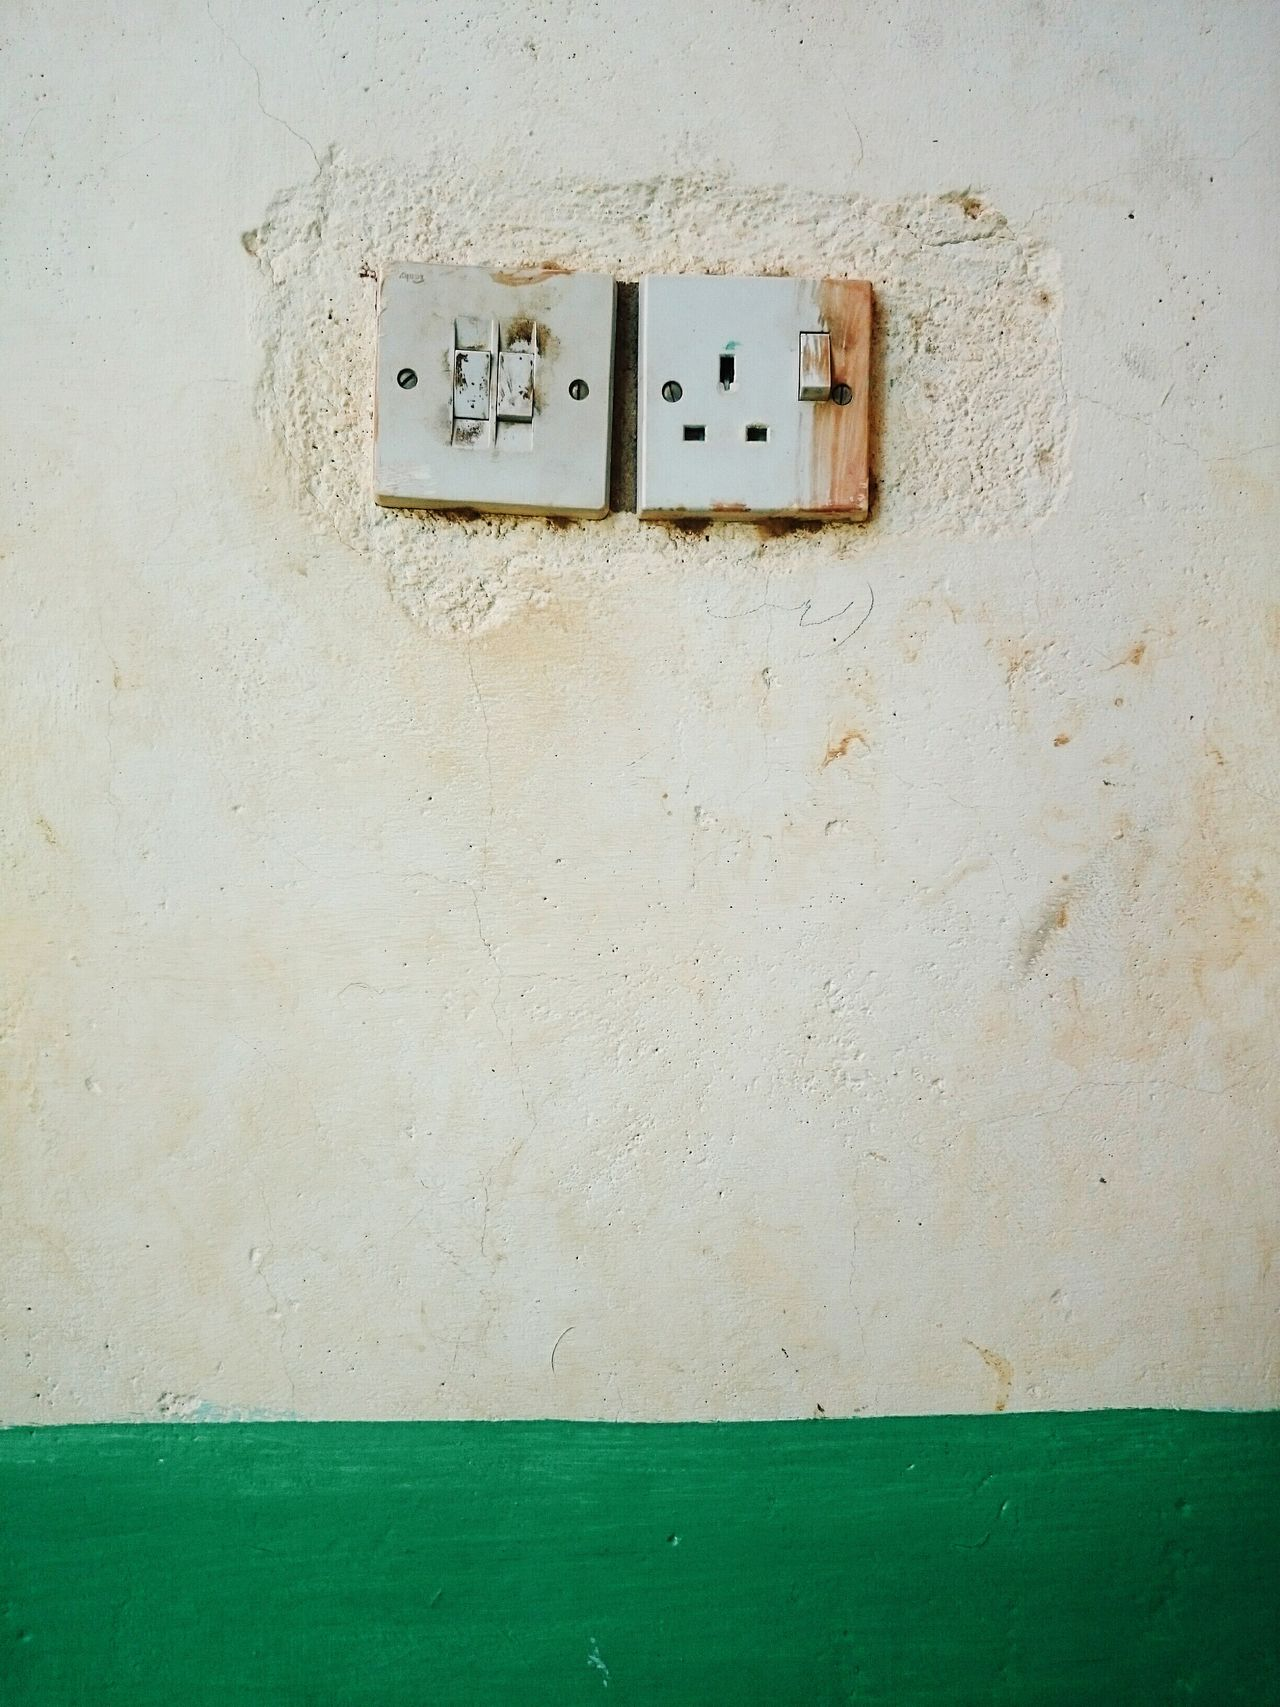 Outdoors Day No People Socket Sockets Green EyeEm Best Edits First Eyeem Photo EyeEm Best Shots Taking Photos Design Designing Check This Out Built Structure Architecture Building Exterior Electricity  Green Color Green Line Electric On Off OnOff Pairs Pair